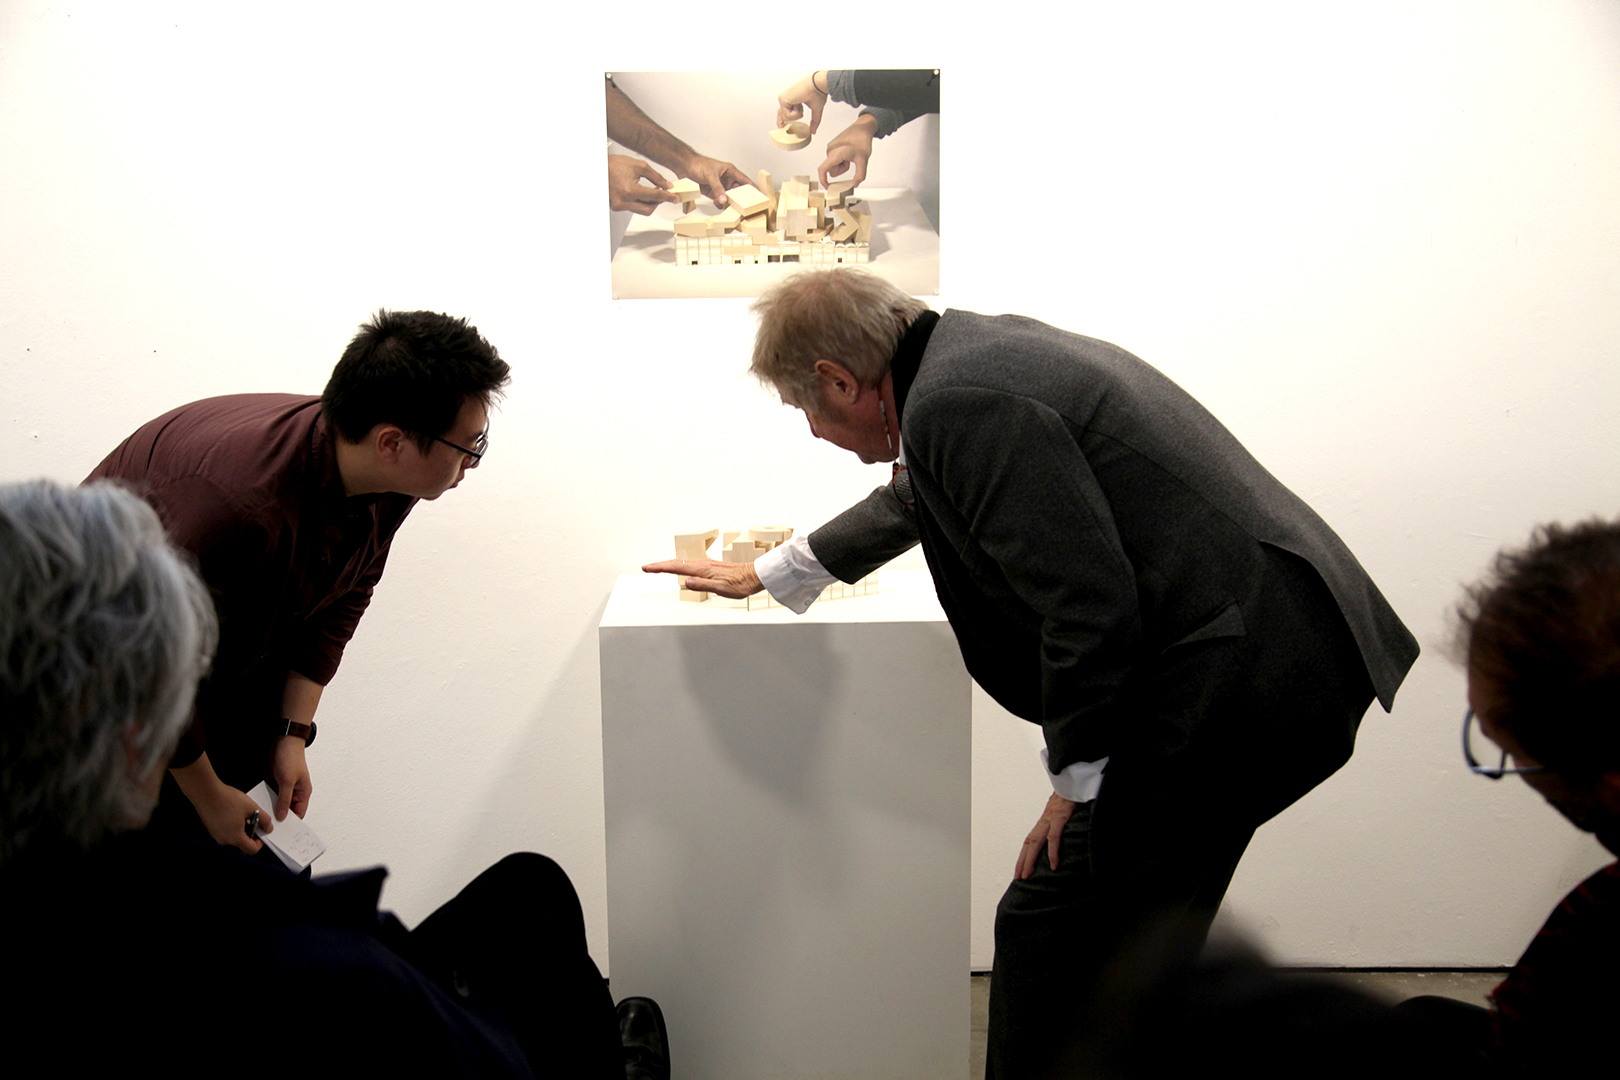 SCI-Arc faculty discussing with a student on an model during presentation